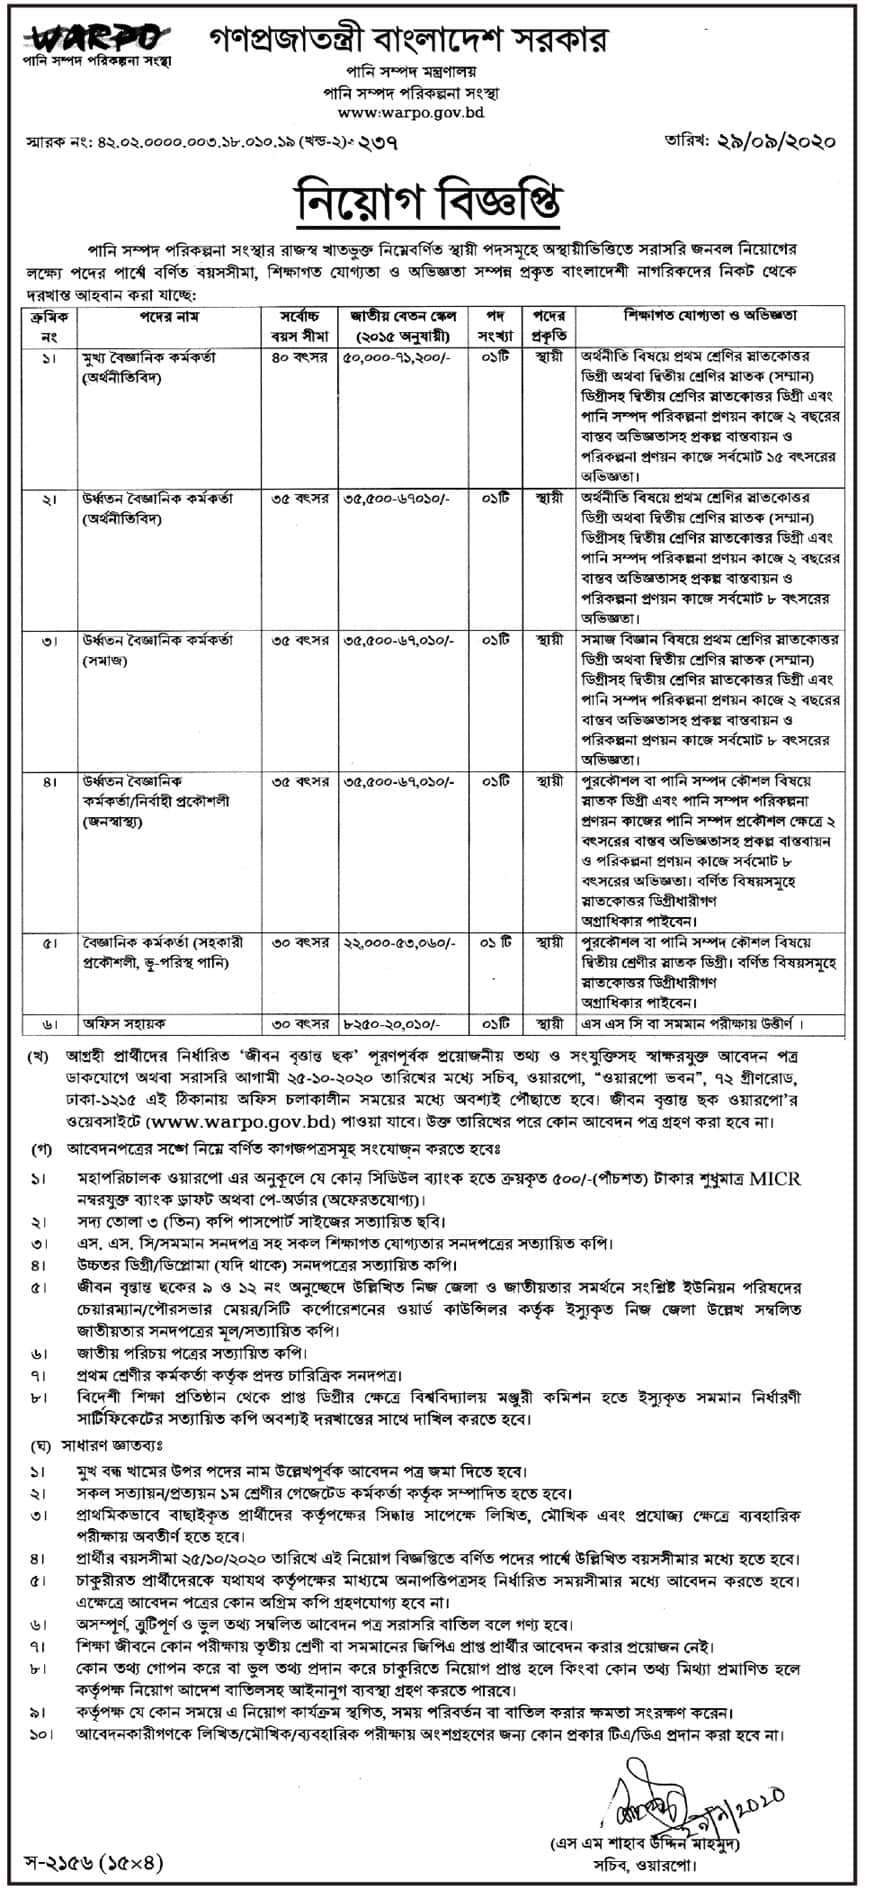 Ministry of Water Resources jobs